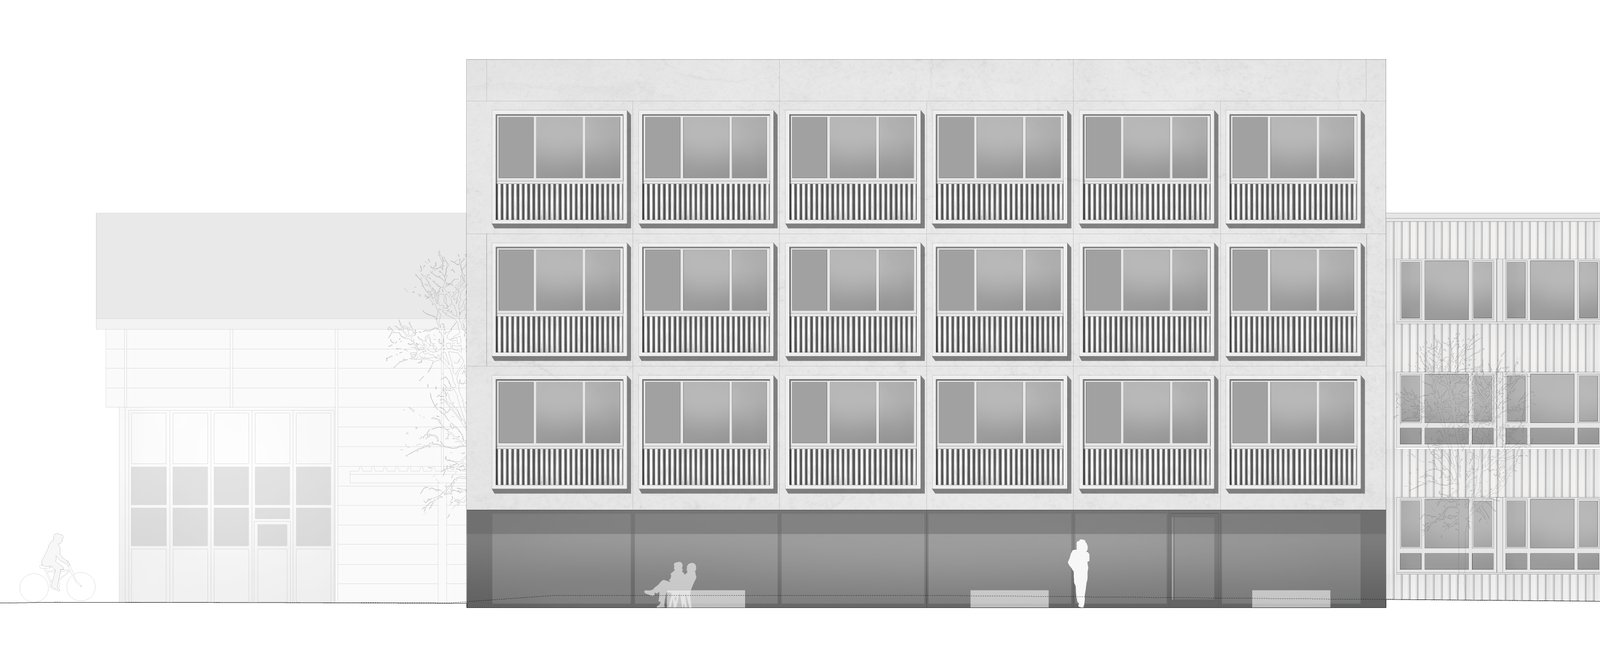 mlzd_itt_Data_Center_Thun_Fassade